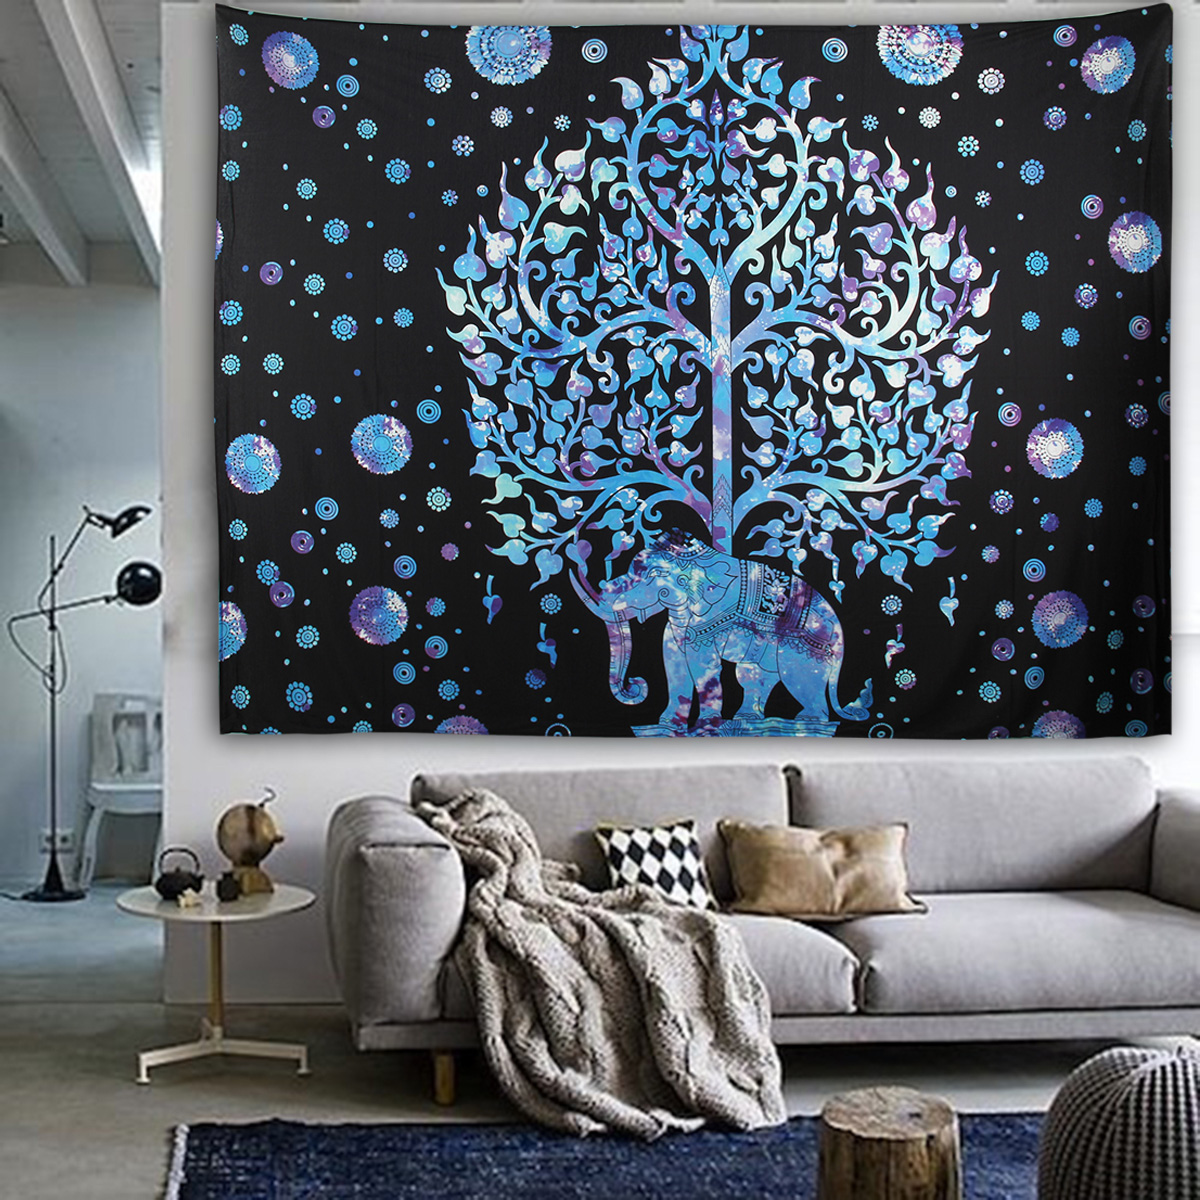 Elephant Mandala Tapestry Throw Towel Hippie Tapestry Floral Printed Home Decor Wall Tapestries Bedspread 210*150CM 23